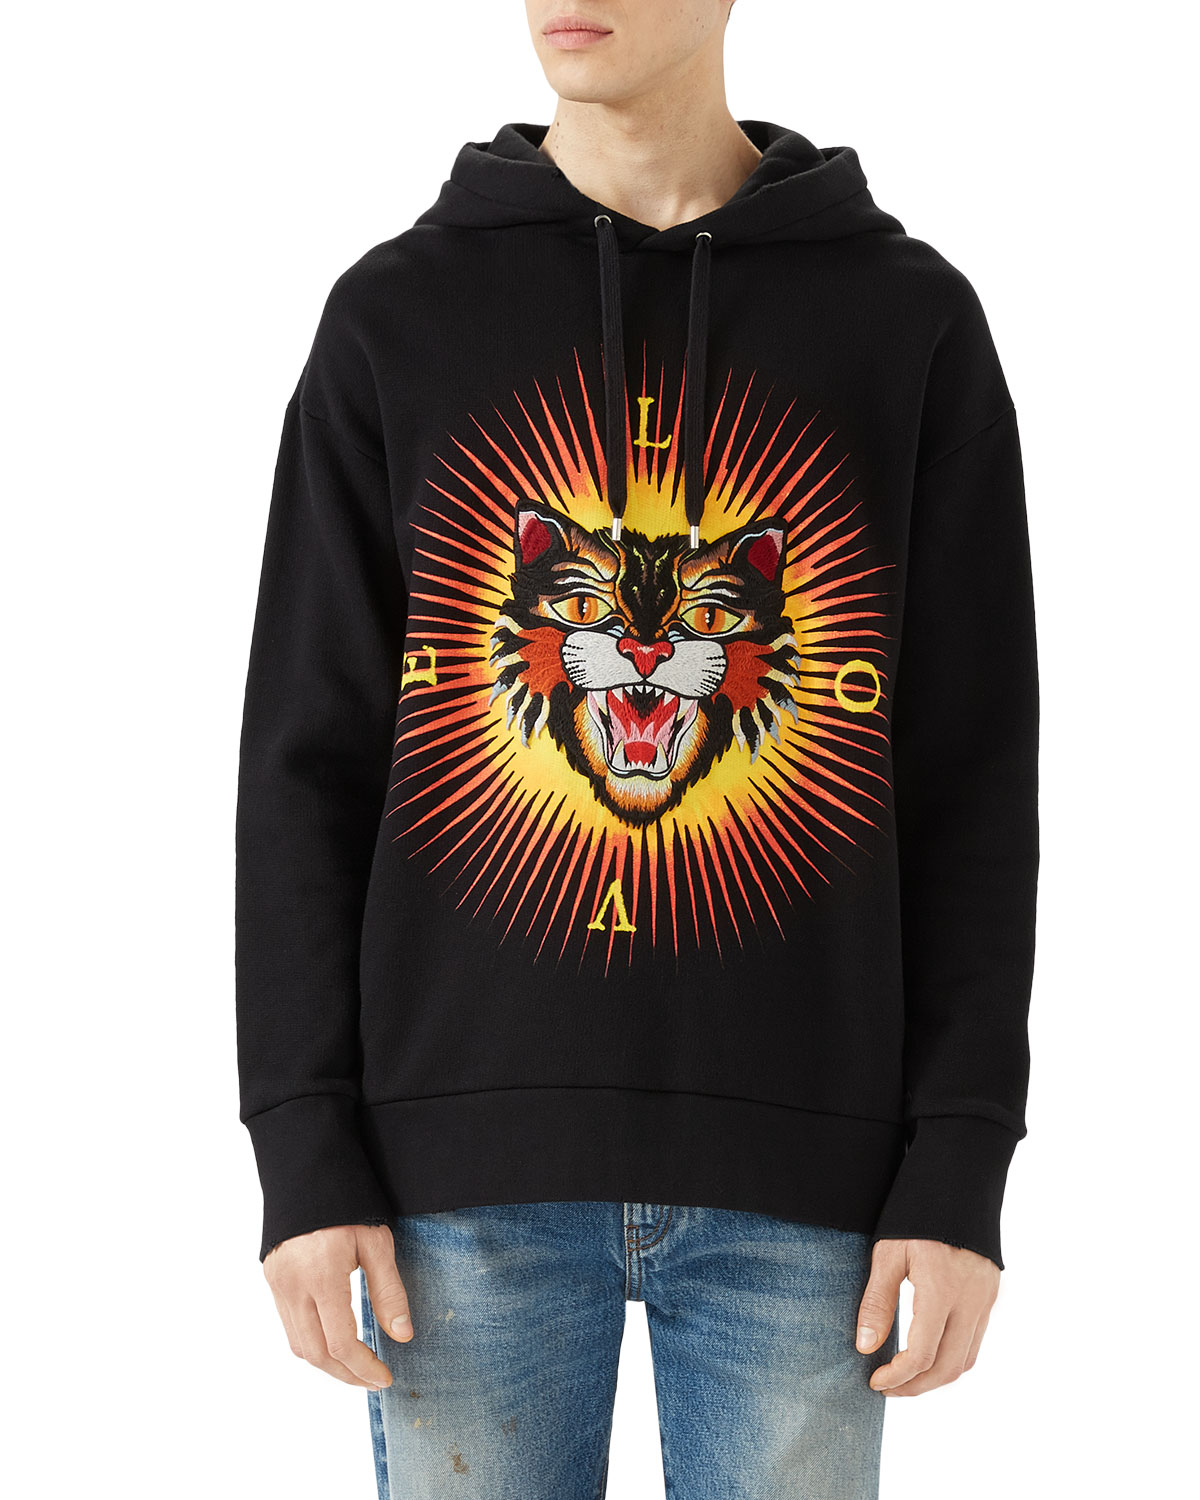 ad4ea7e7755 Gucci Cotton Sweatshirt with Angry Cat Appliqué